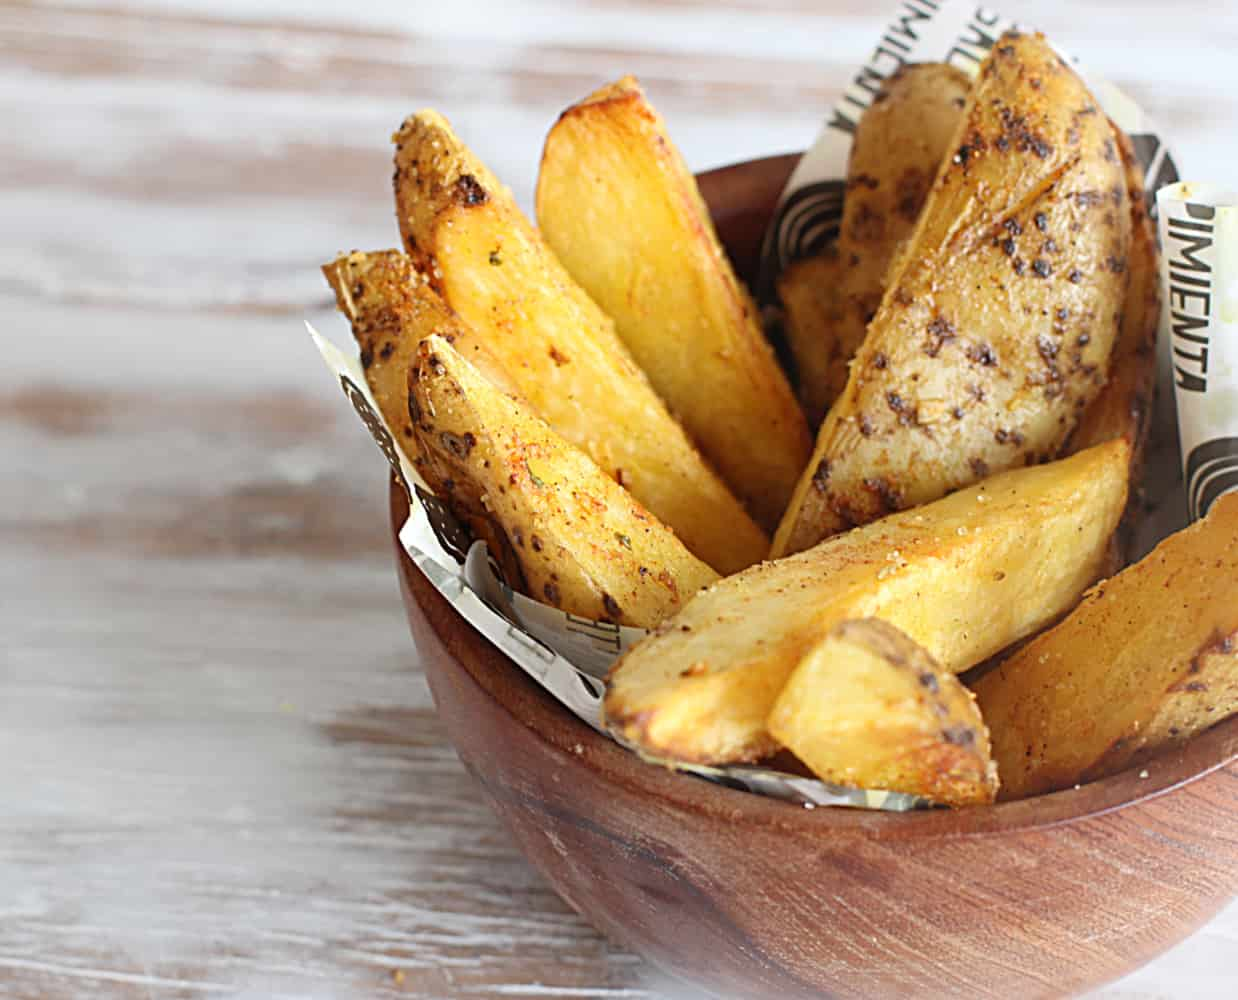 Small wooden bowl with skin-on potato wedges, a whitish surface